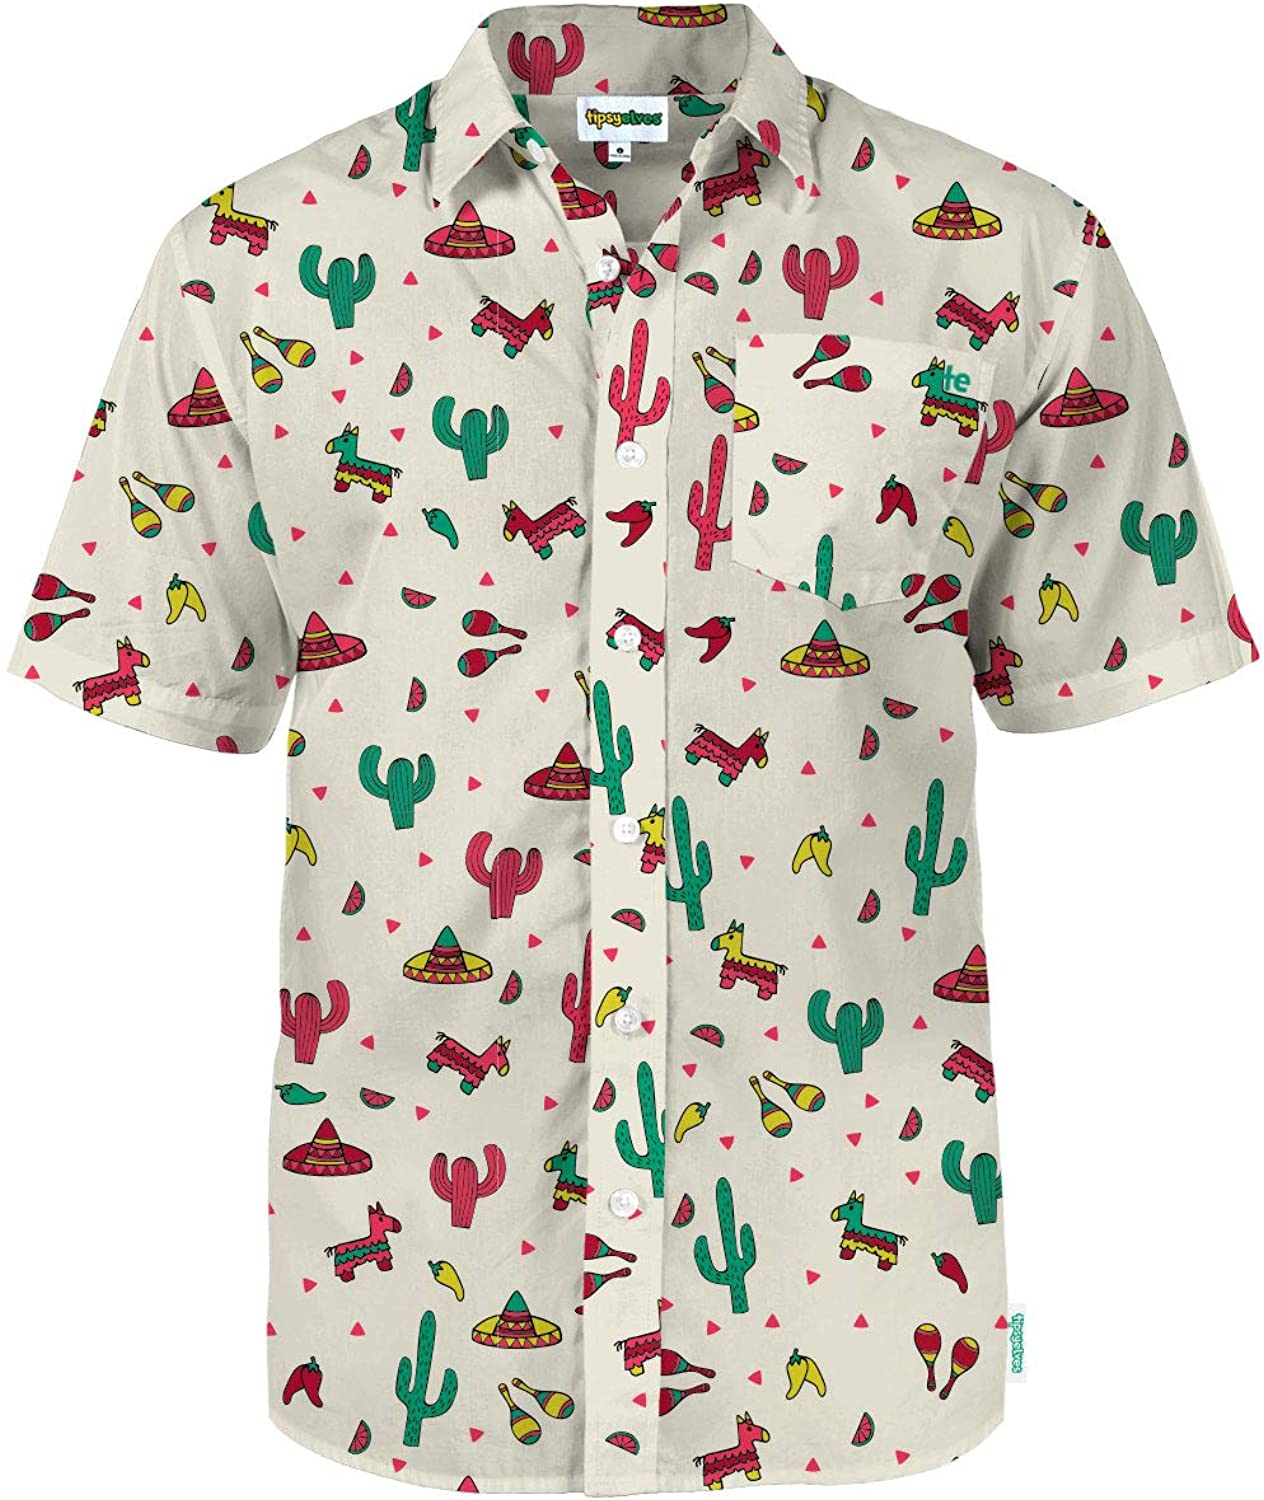 80s Men's Clothing | Shirts, Jeans, Jackets for Guys Mens Bright Hawaiian Shirts for Spring Break and Summer - Aloha Shirt for Guys $39.95 AT vintagedancer.com